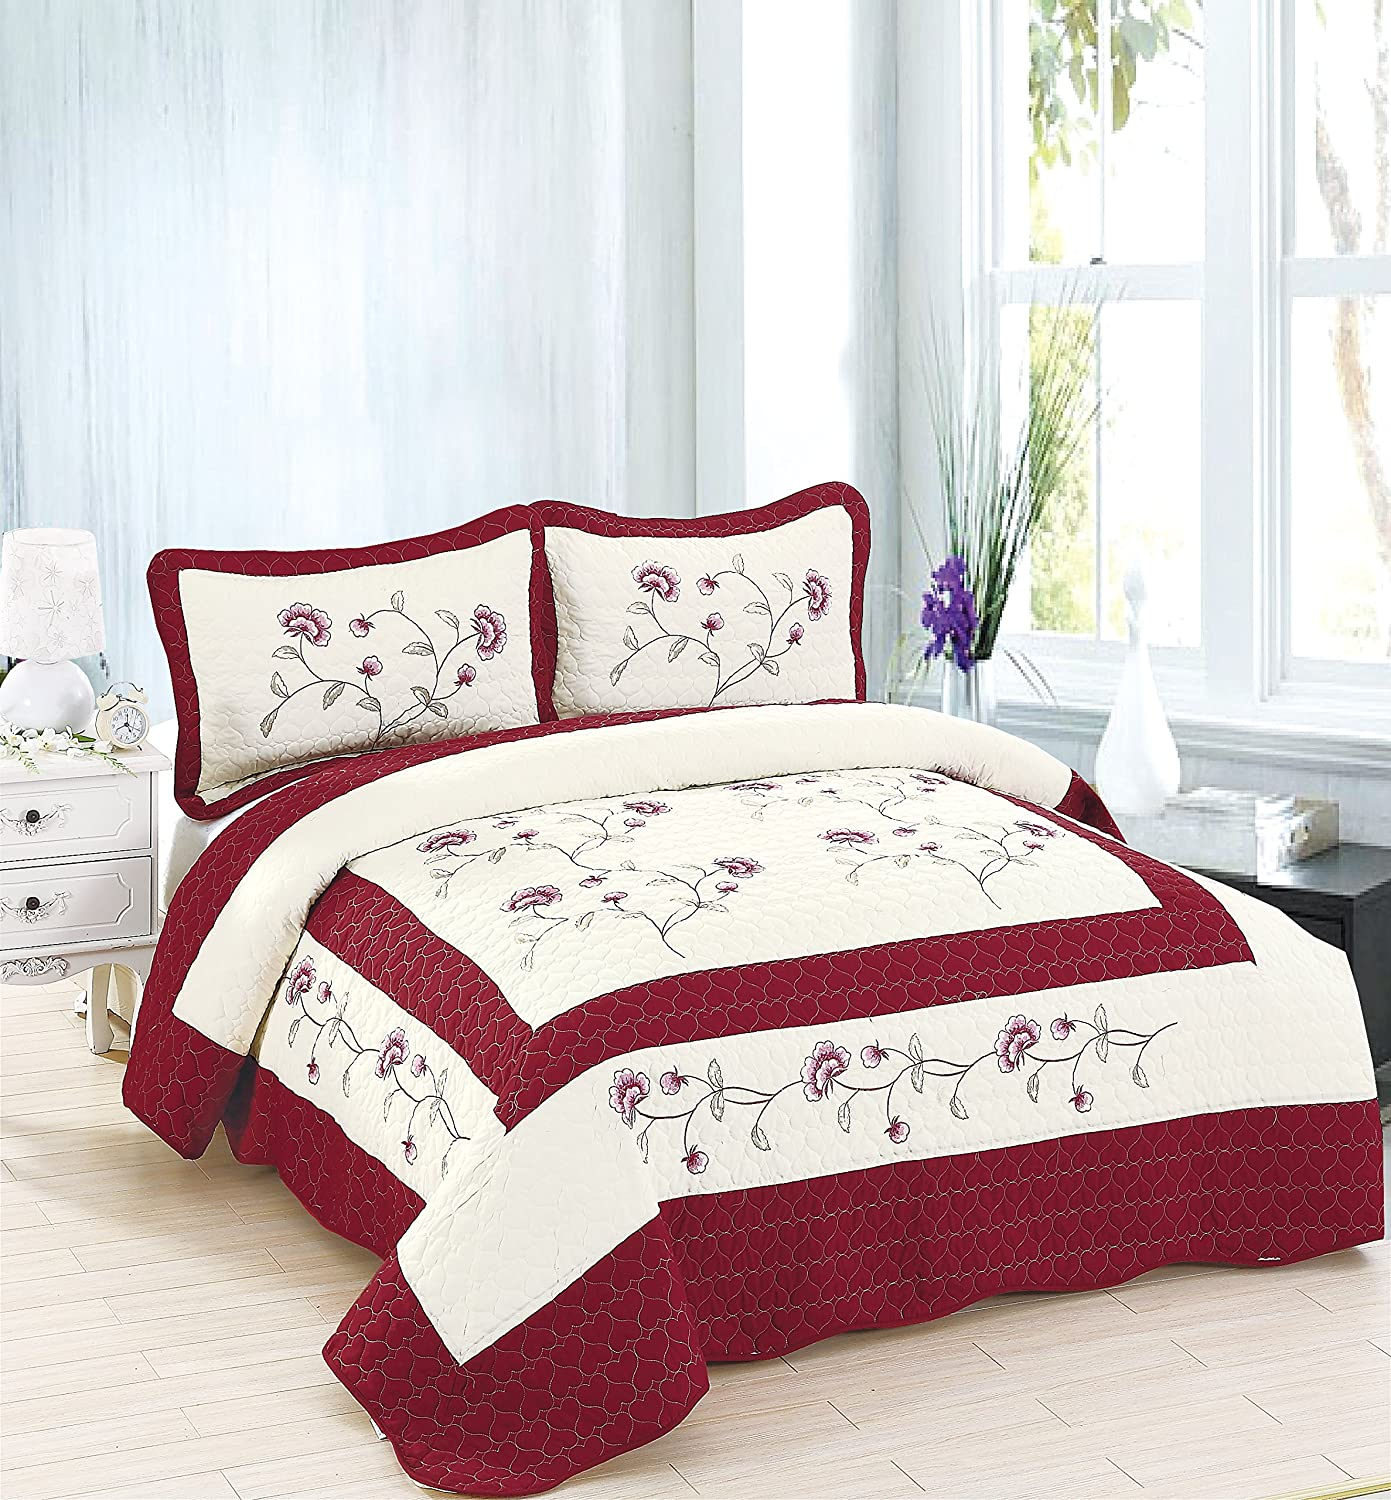 Amazoncom Marcielo 3 Piece Fully Quilted Embroidery Quilts Bedspreads Bed Coverlets